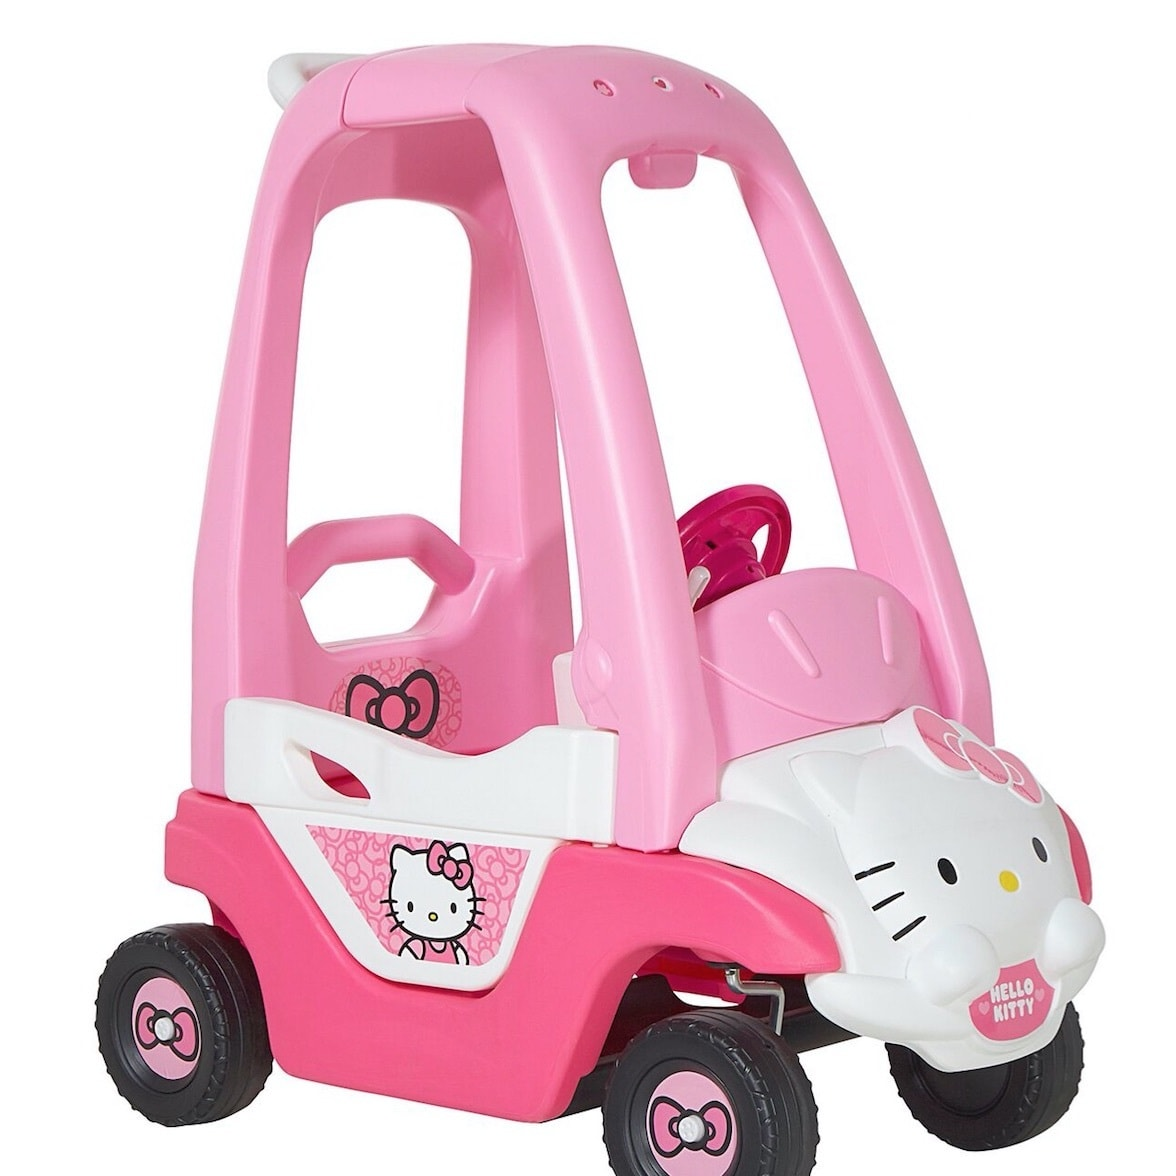 kids ride on hello kitty fun play toy pink plastic toddlers foot powered car